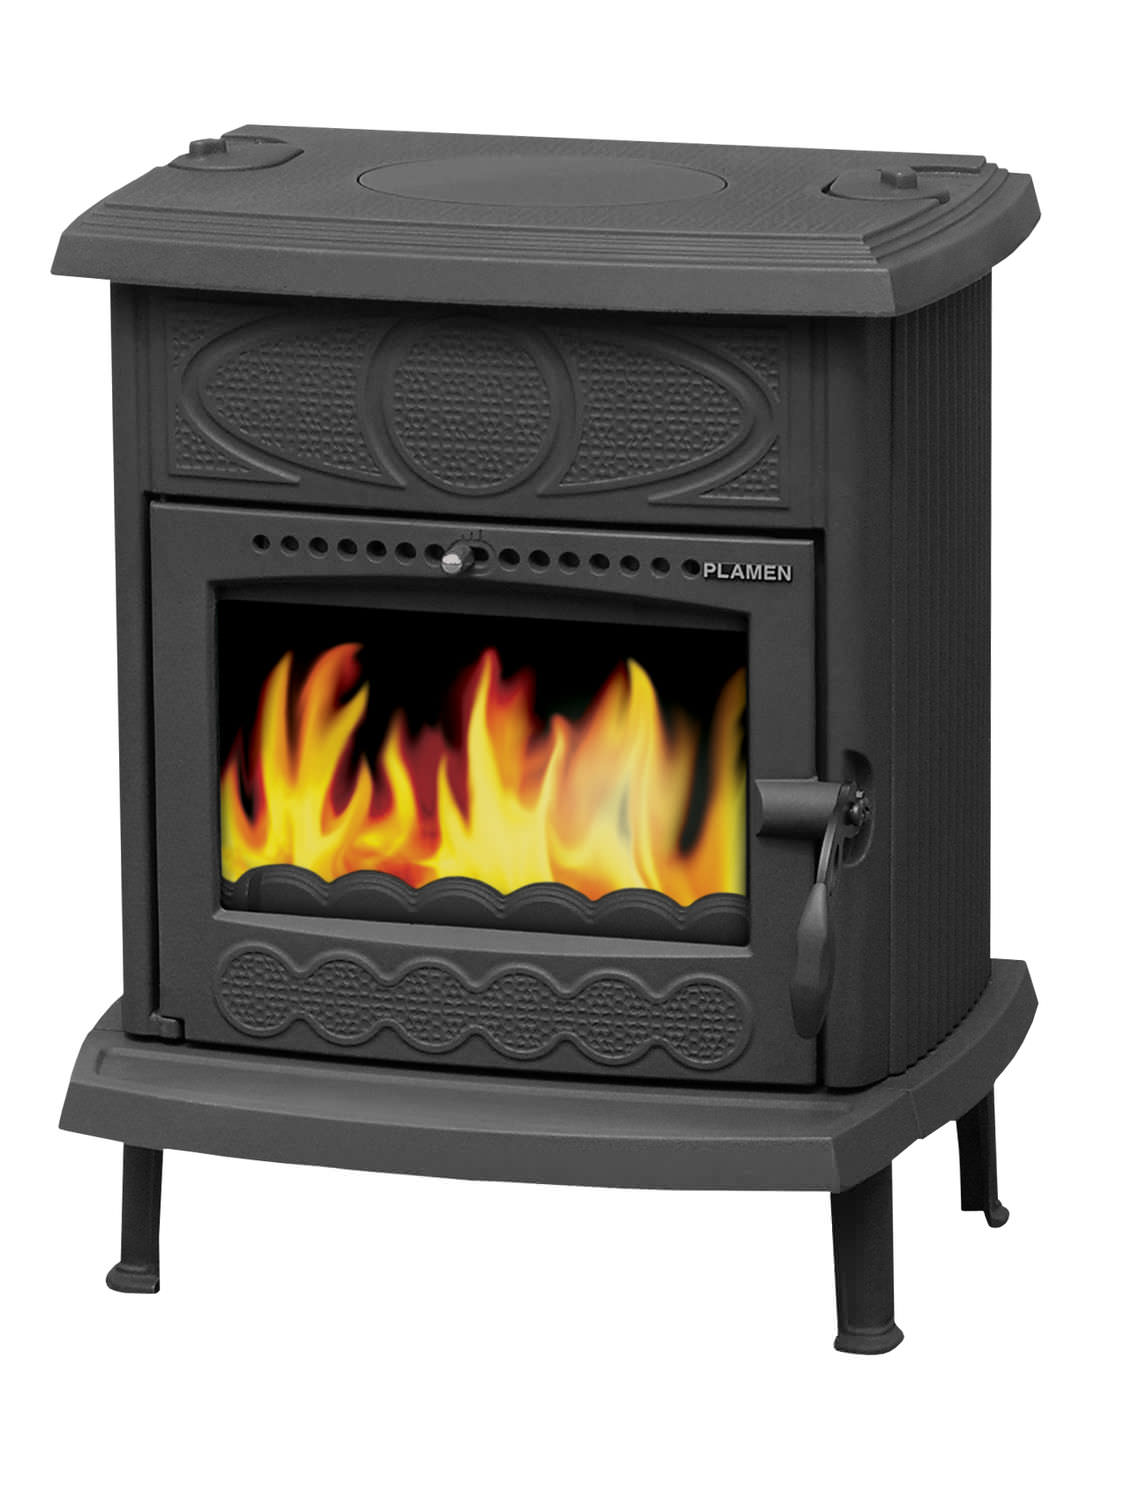 Heat Resistant Paint Fireplace Multi Fuel Heating Stove Traditional Cast Iron Glas Amity